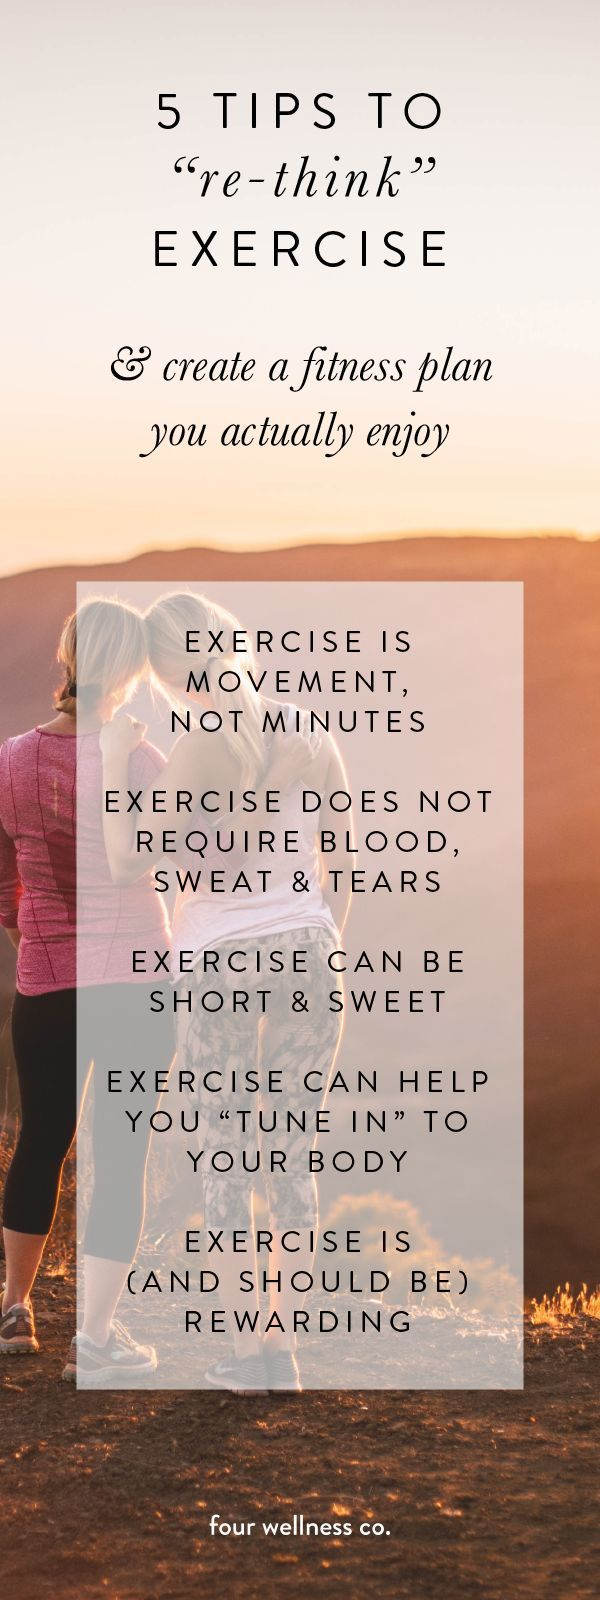 5 Tips to Re-Think Exercise // Four Wellness Co.